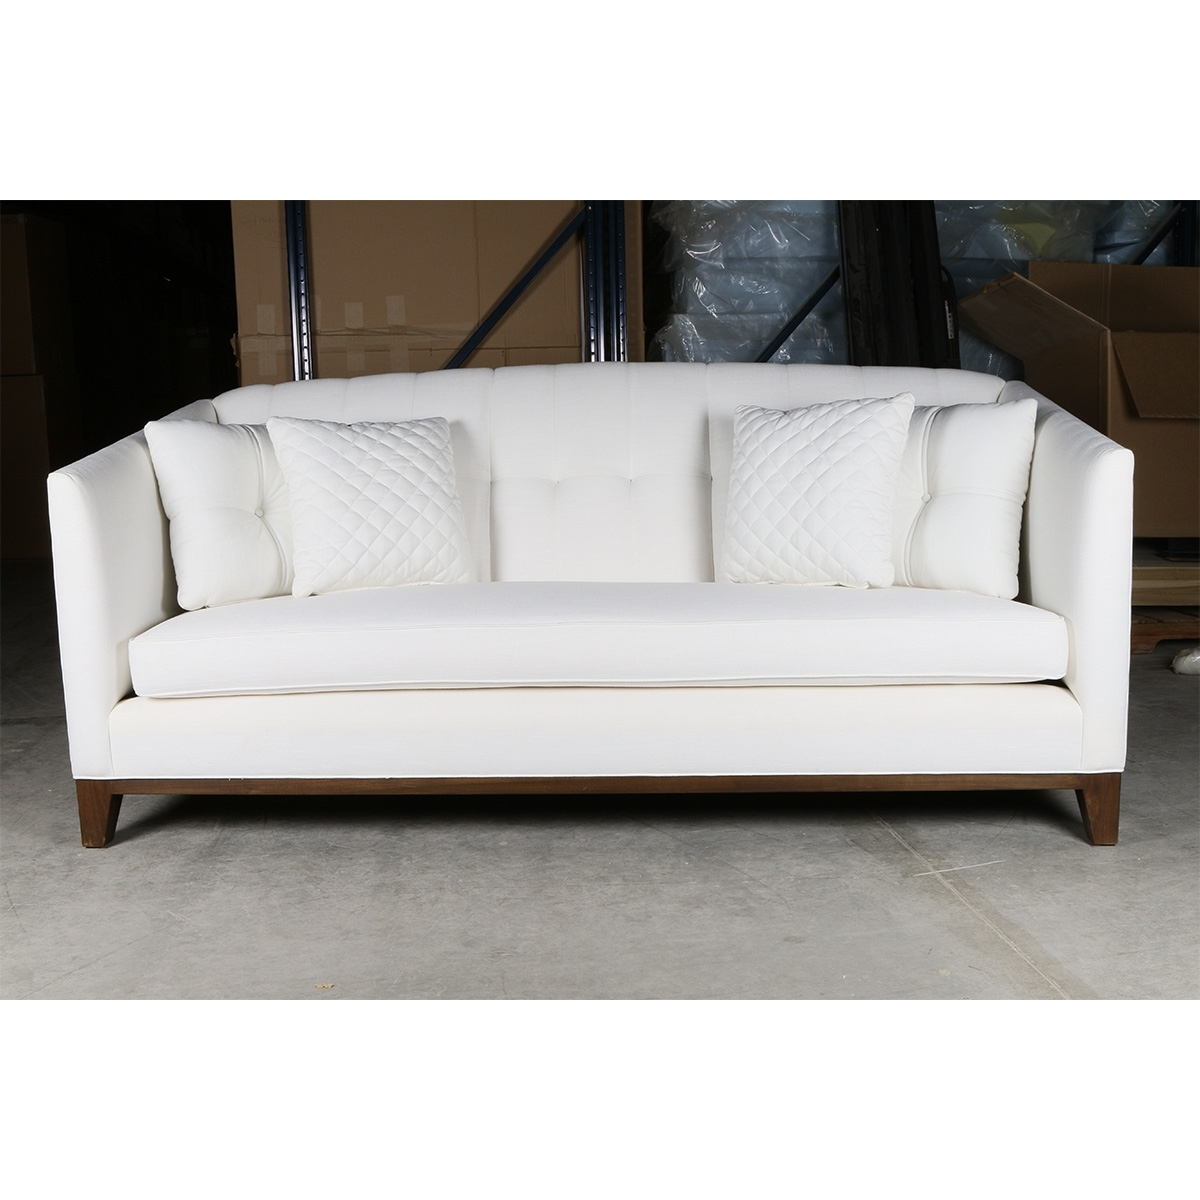 """Tufted Linen Sofas Throughout Well Liked Lois Tufted Linen Sofa 84"""" – South Cone Home Furniture (View 16 of 20)"""